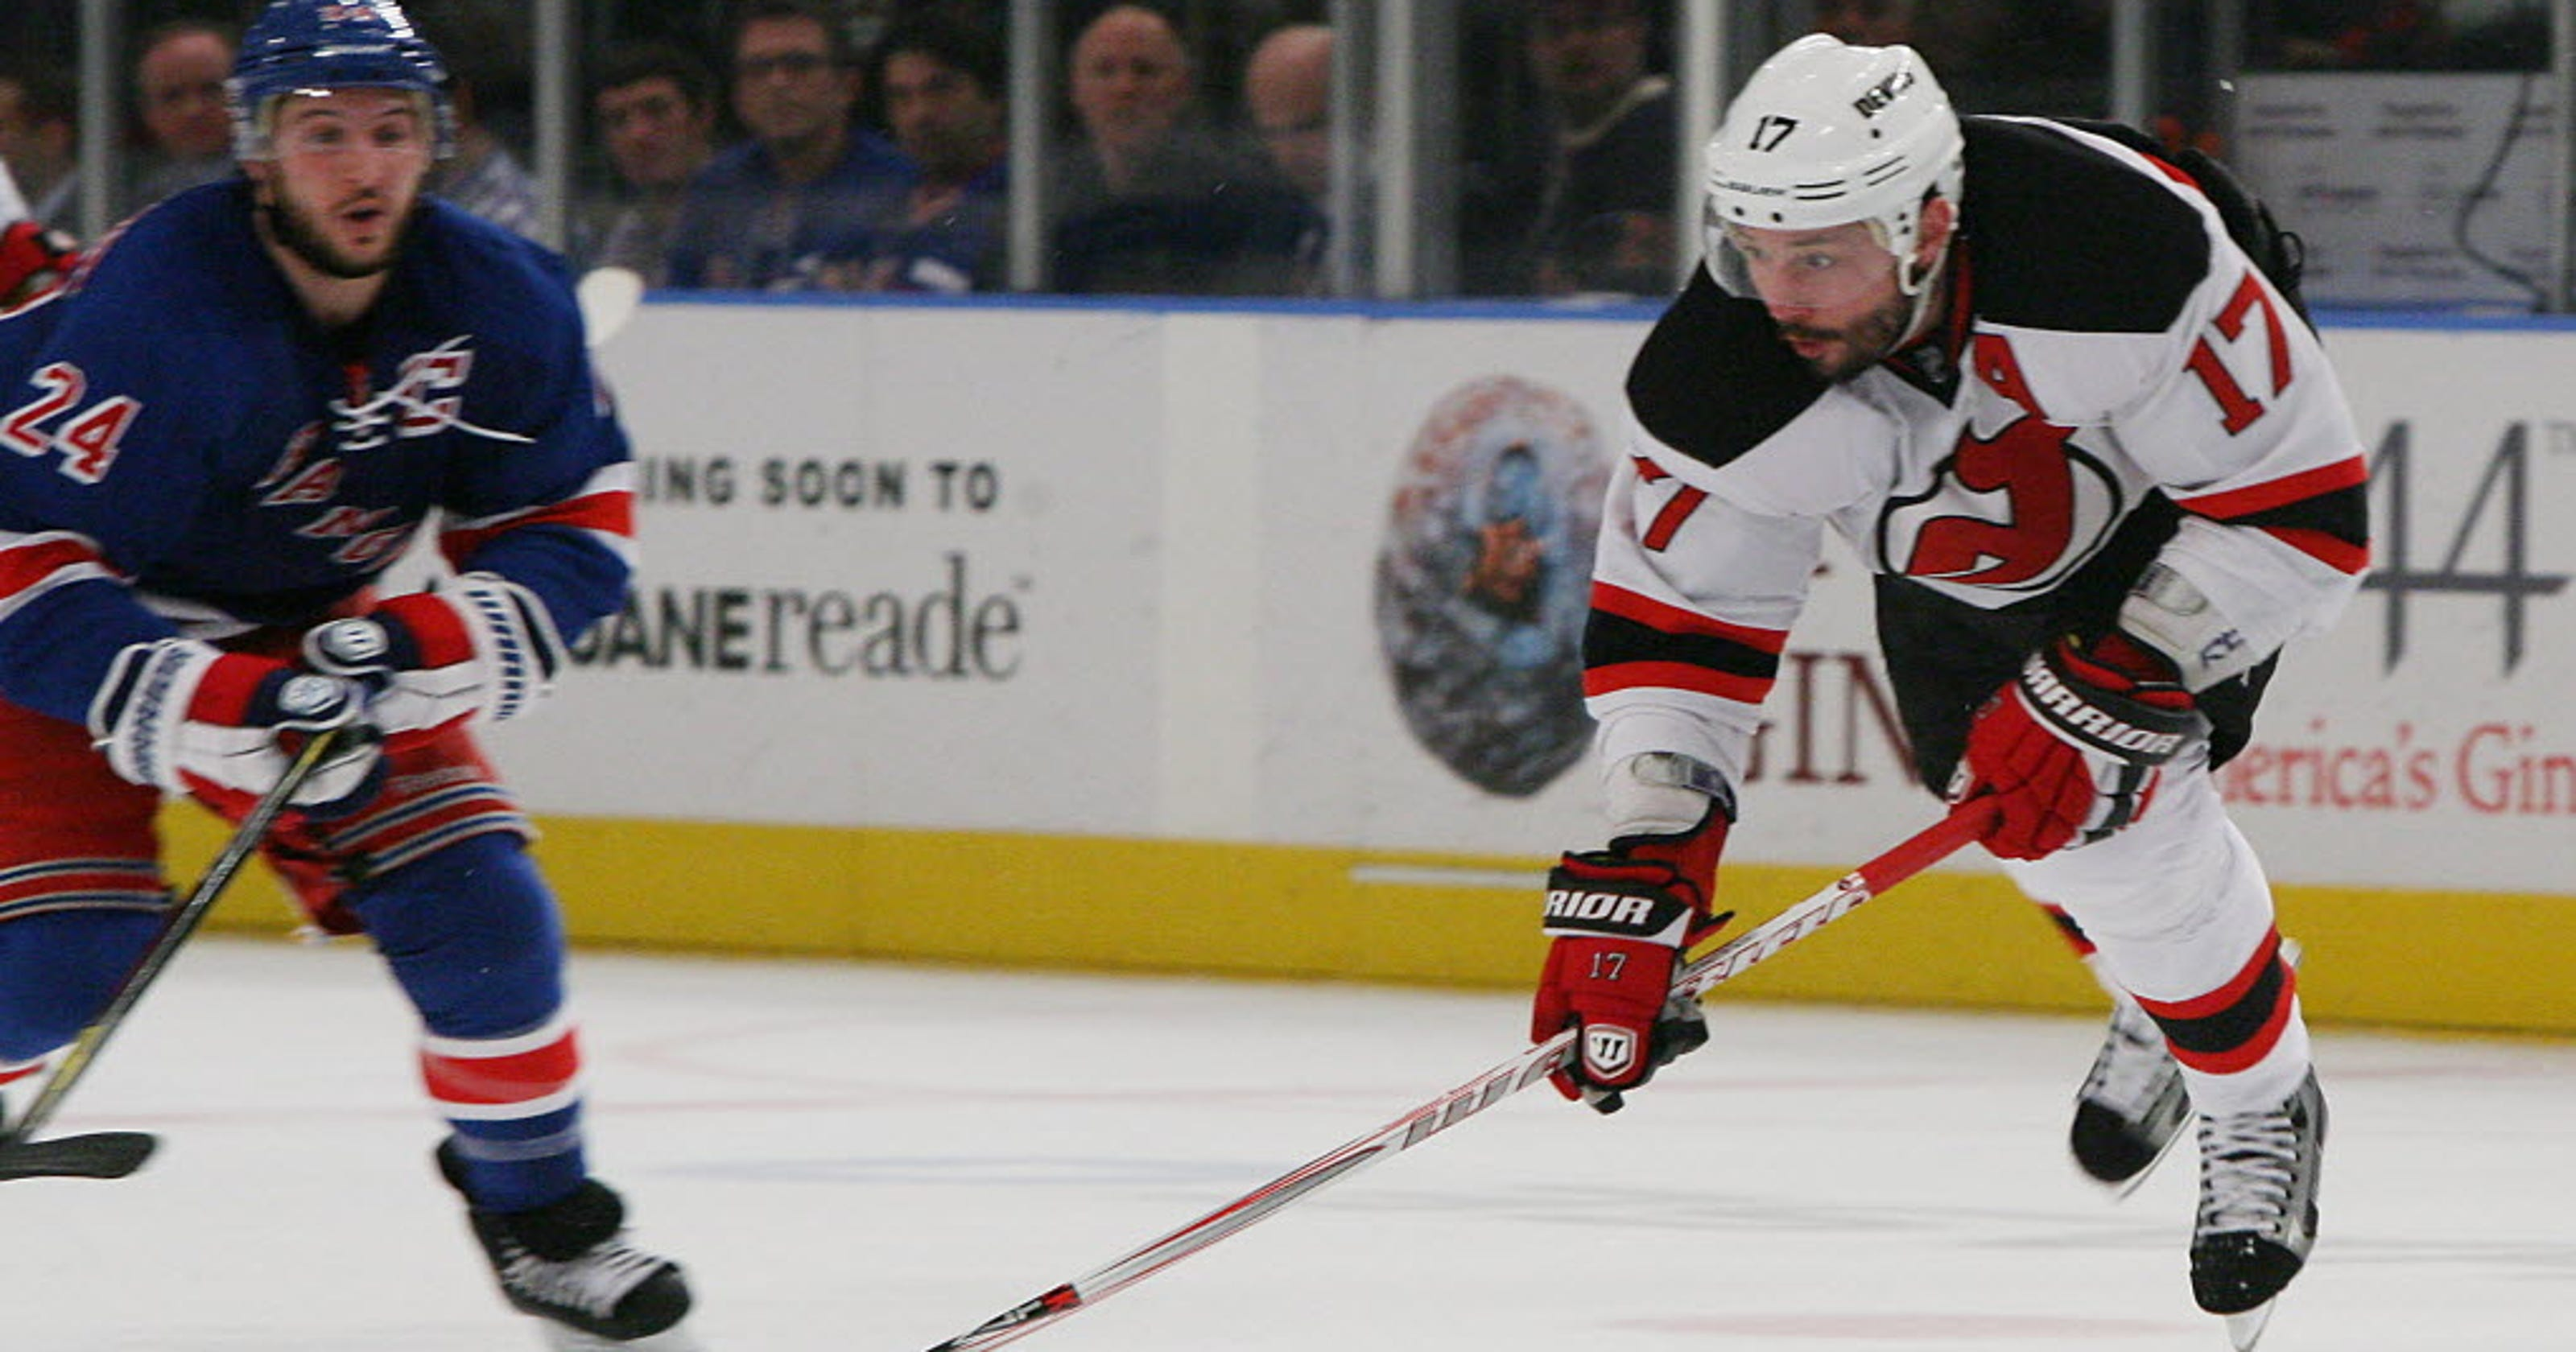 NJ Devils welcome back Ilya Kovalchuk vs. Kings after he left in 2013 ddbc4c0df